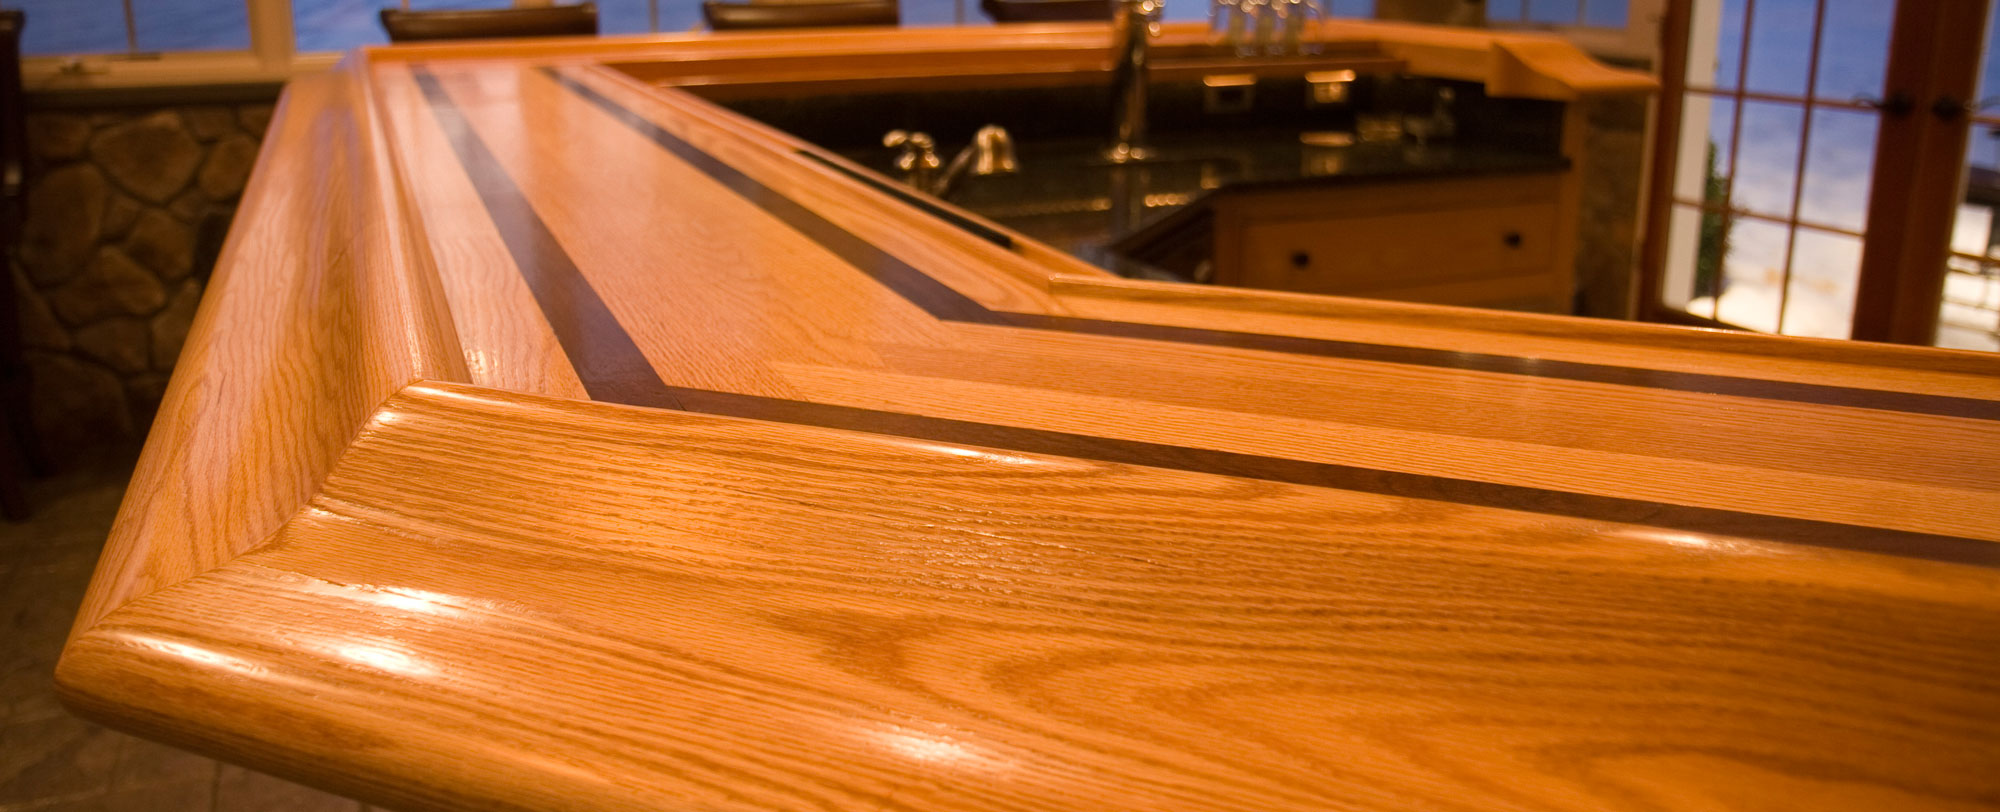 hardwood-for-bar-countertop